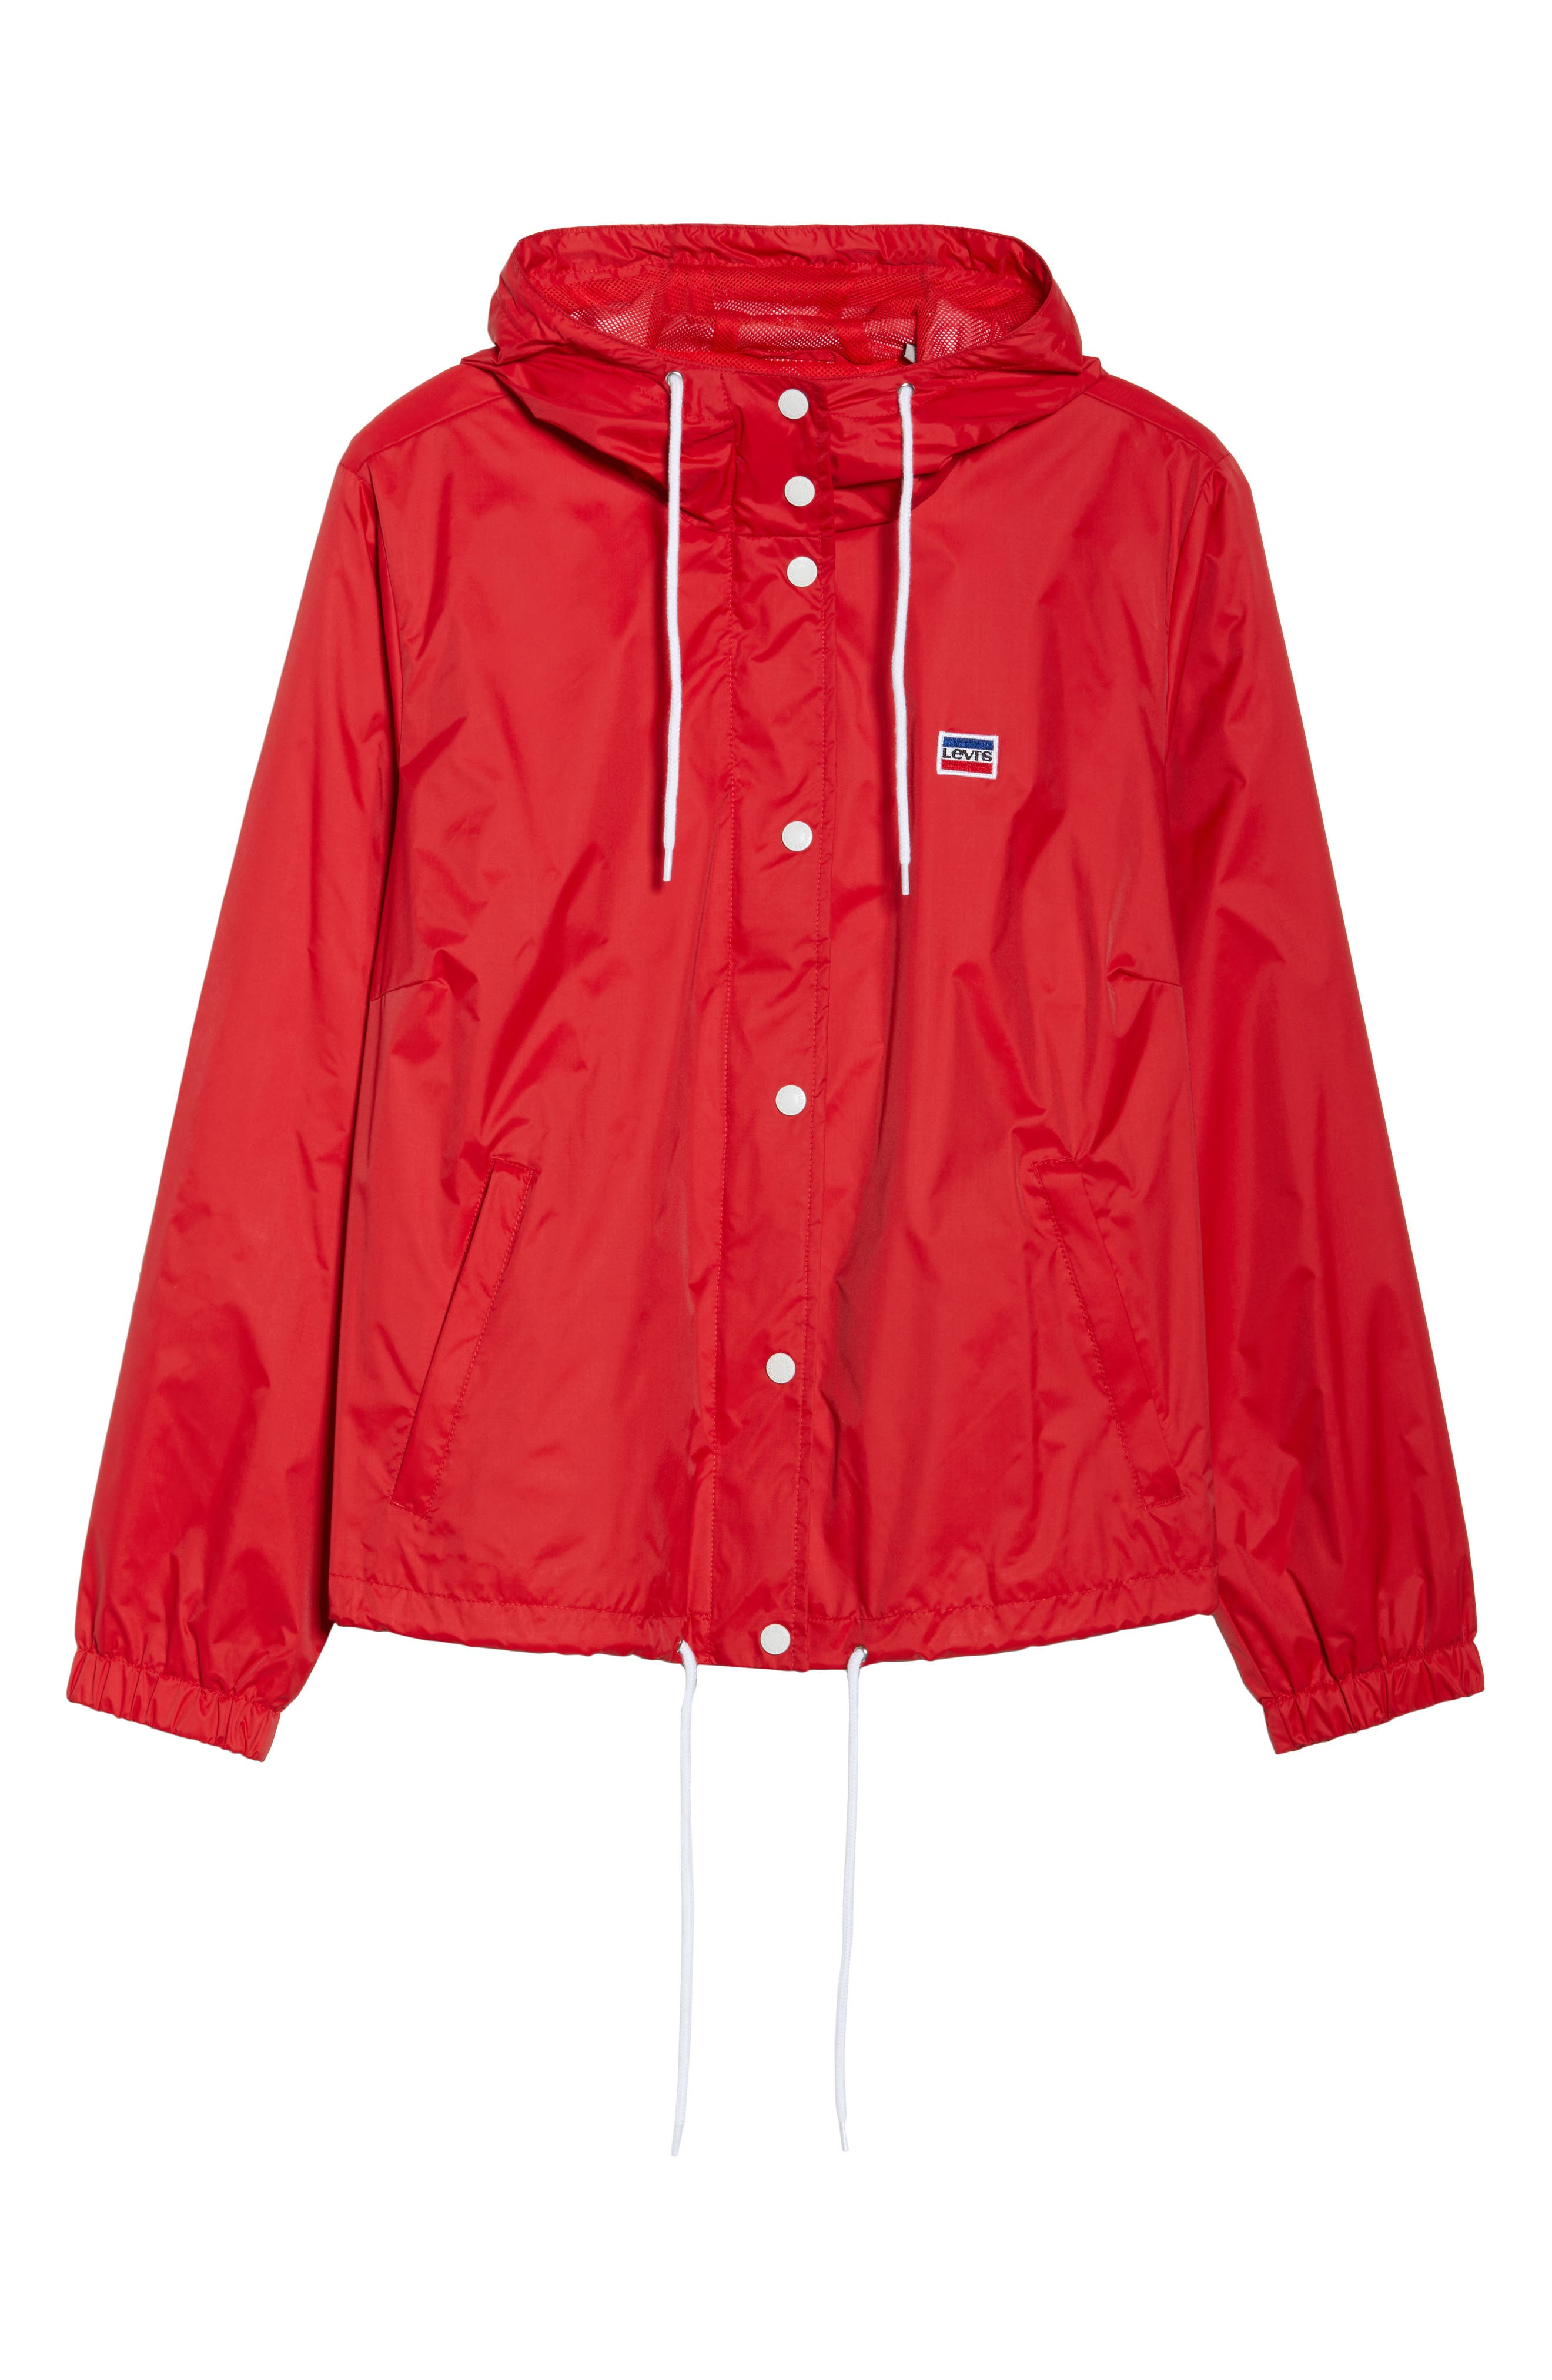 Retro Hooded Coach's Jacket,                             Alternate thumbnail 6, color,                             Red